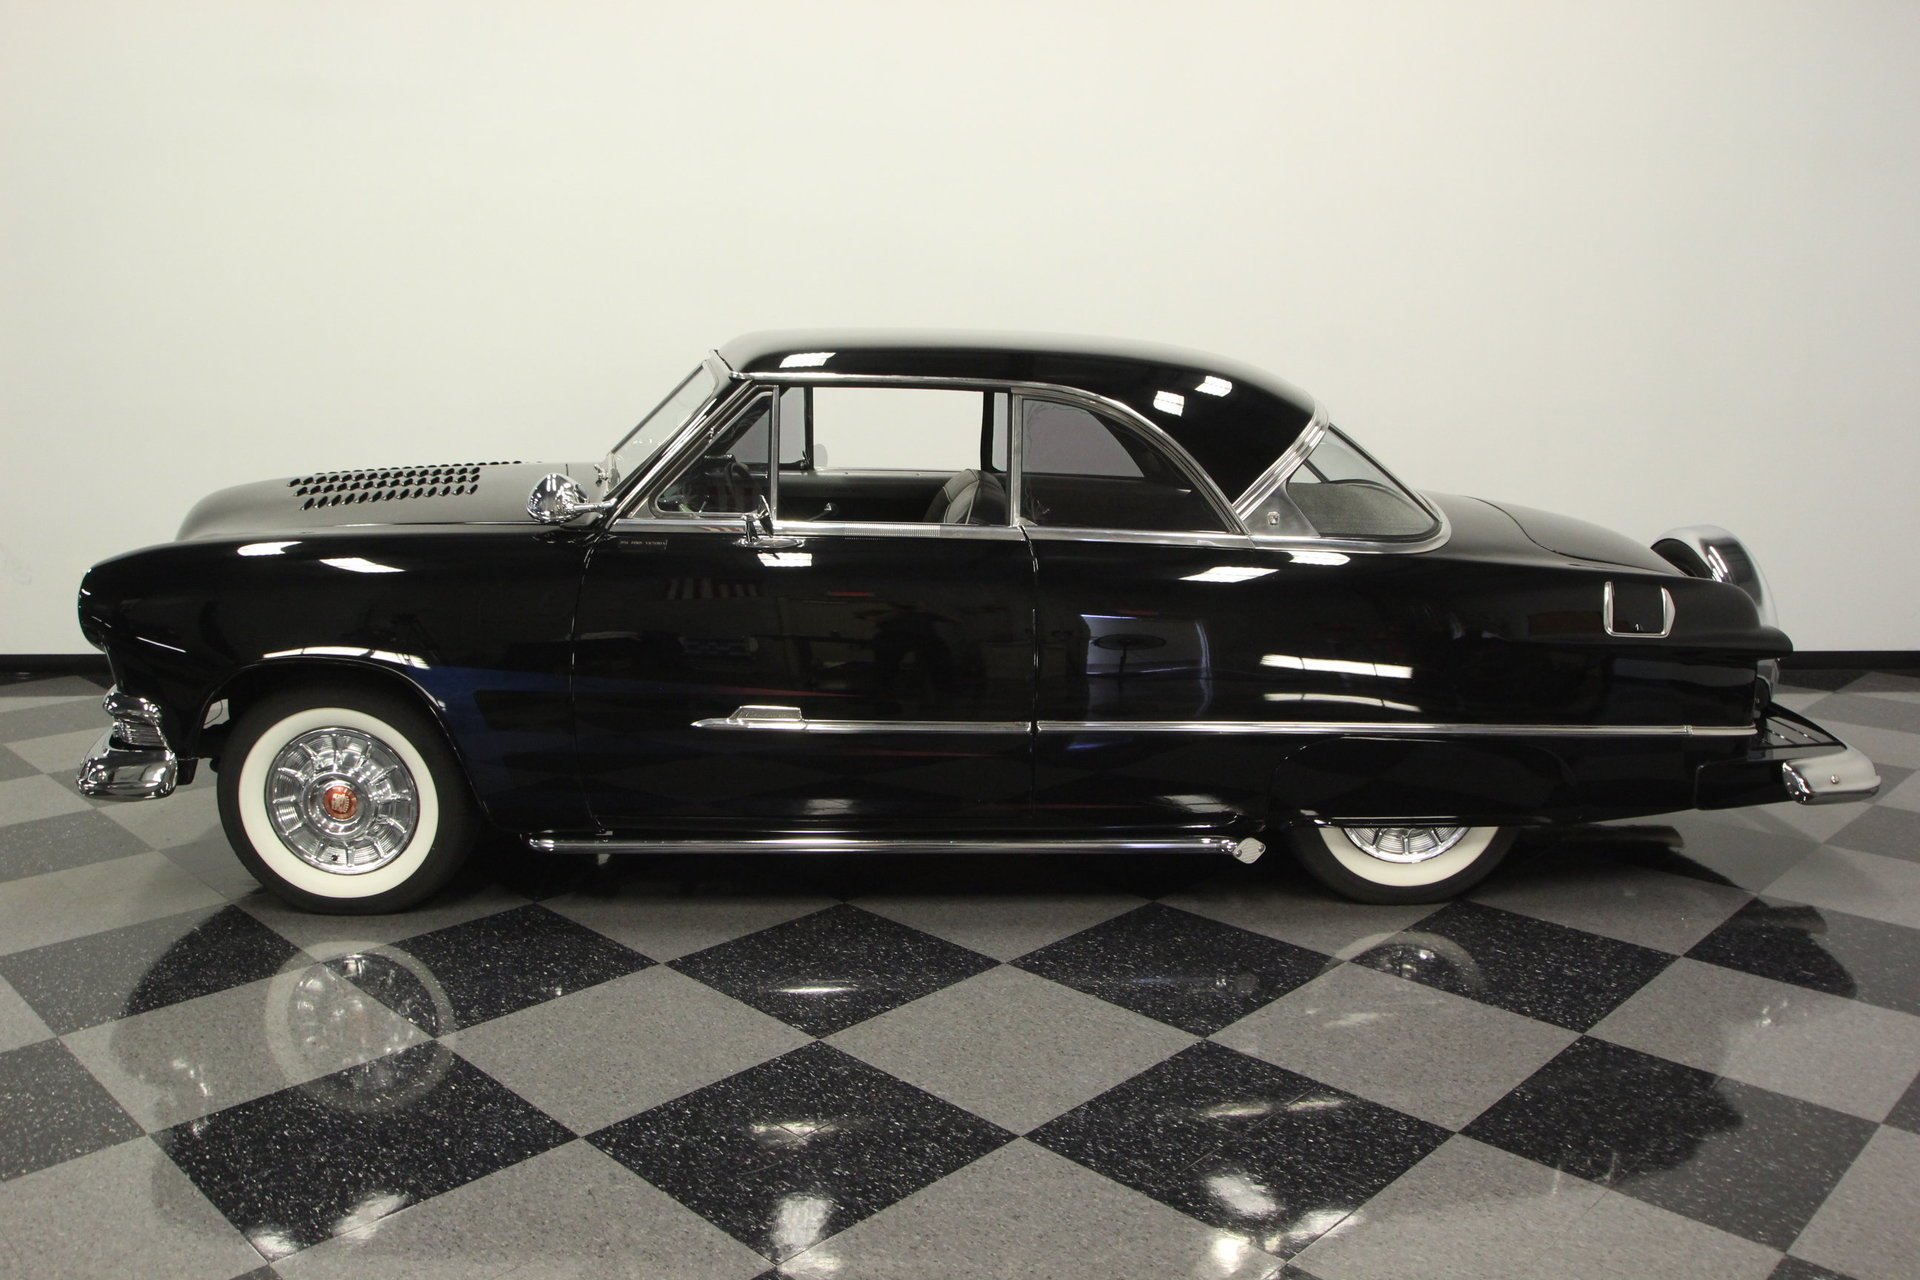 1951 Ford Victoria Streetside Classics The Nations Trusted Cadillac Hot Rod View 360